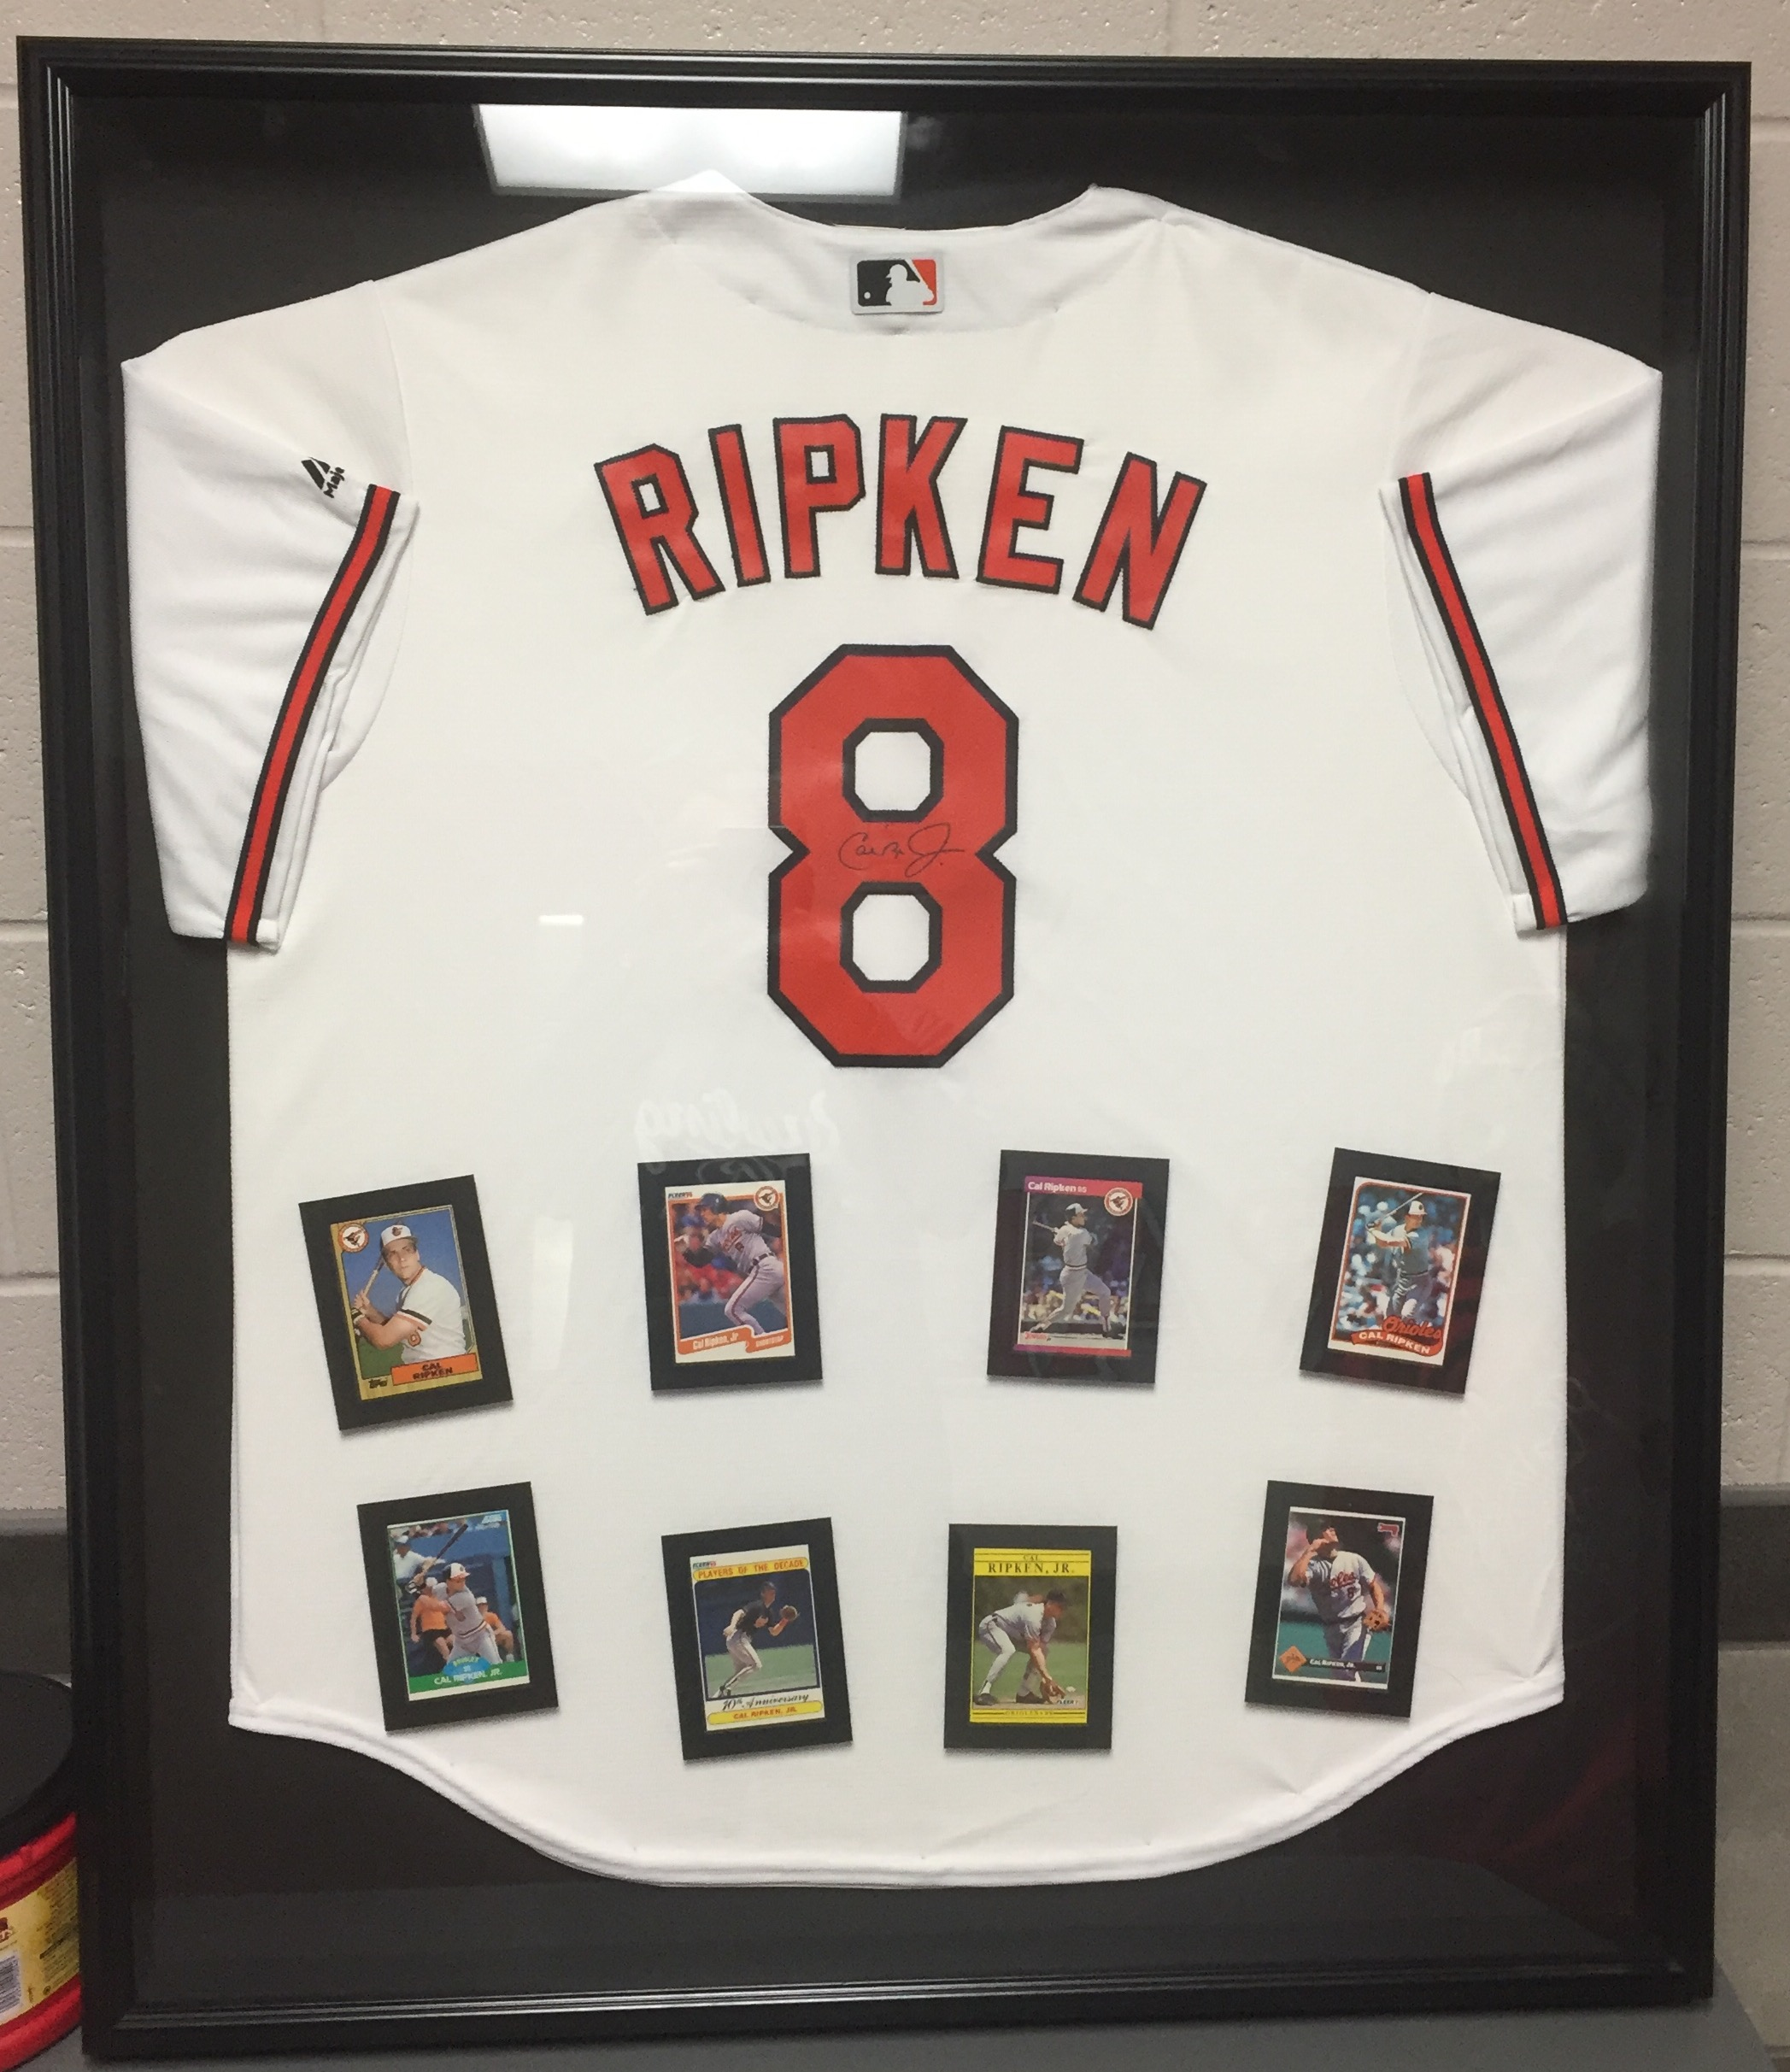 c34db12577c The Buckeye Knights Travel Baseball Club is raffling an autographed jersey  of Cal Ripken